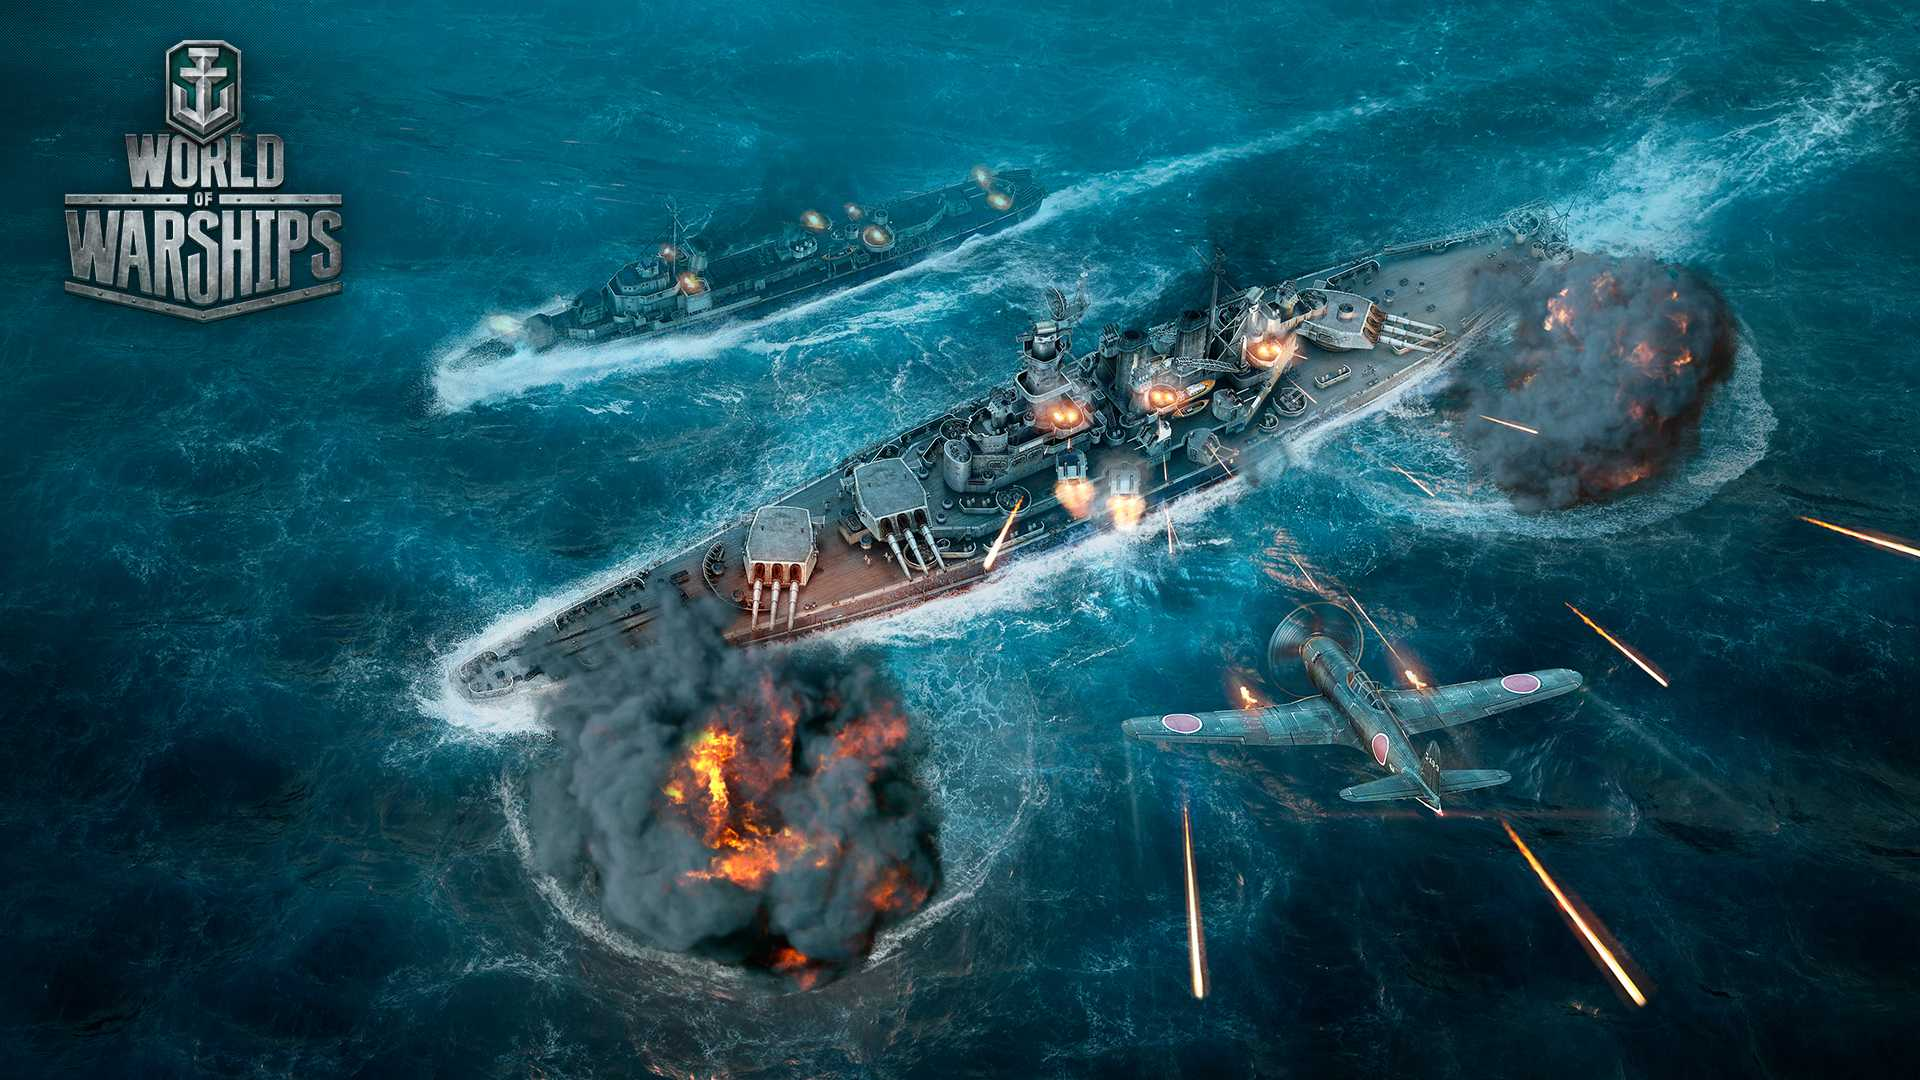 World Of Warships Wallpaper 4